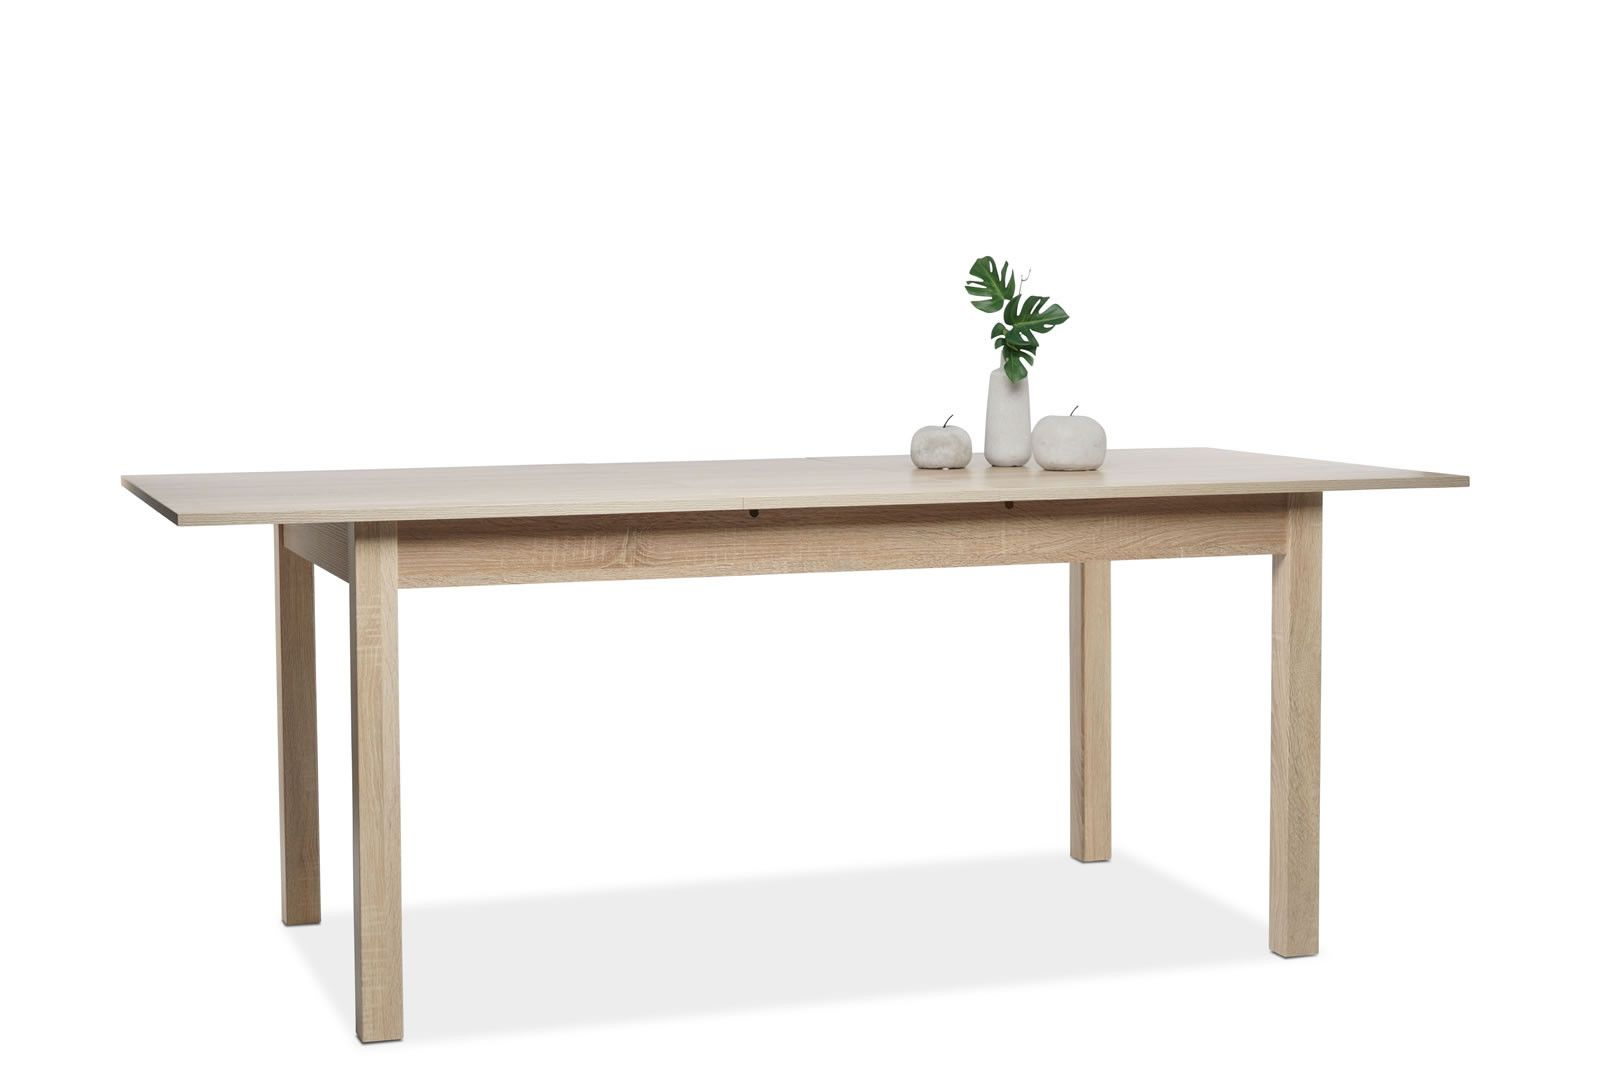 Table manger avec allonge 160 200 cm jiminy ch ne clair for Table 160 cm avec rallonge